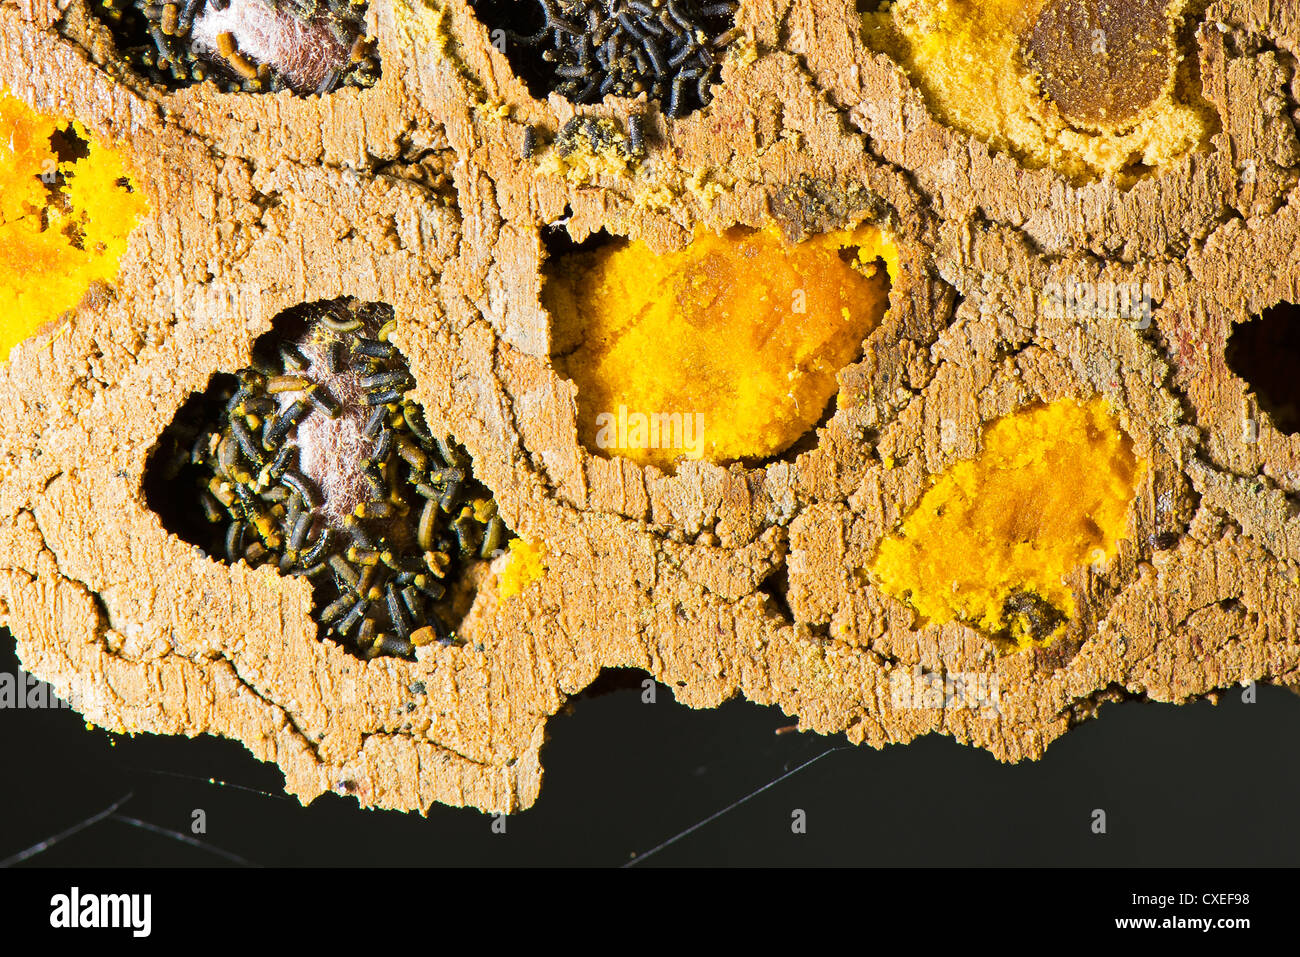 A close up of a colony of Red Mason bees - Stock Image